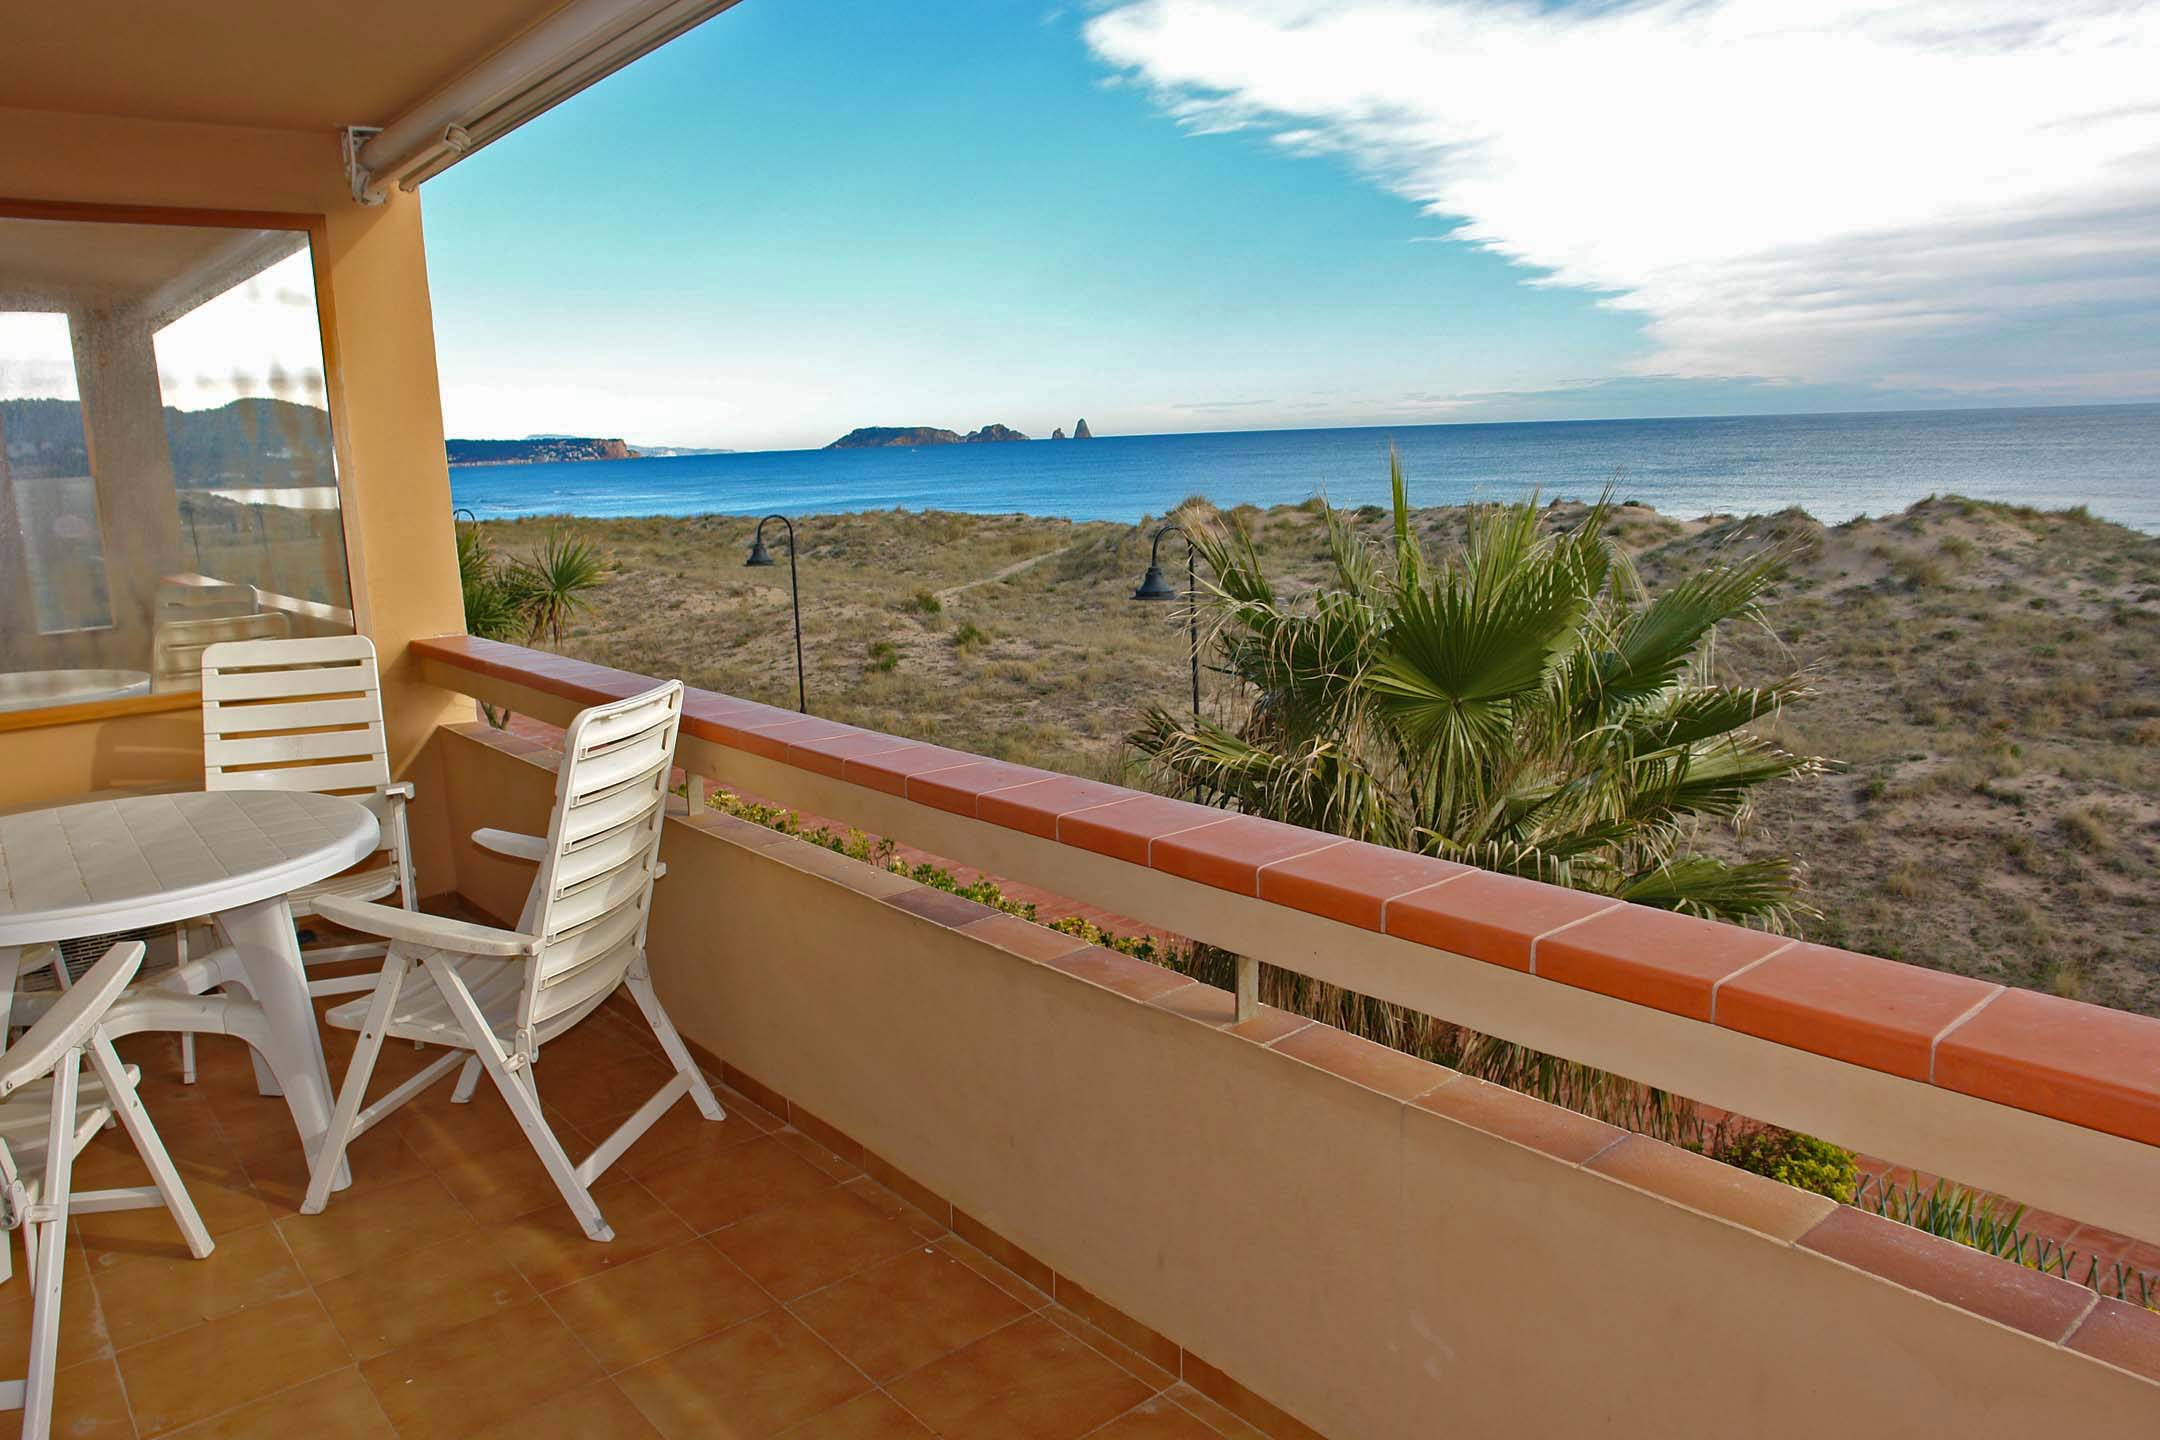 Apartamento para Venda às Seafront apartment with fantastic views in Playa de Pals Pals, Costa Brava 17256 Espanha